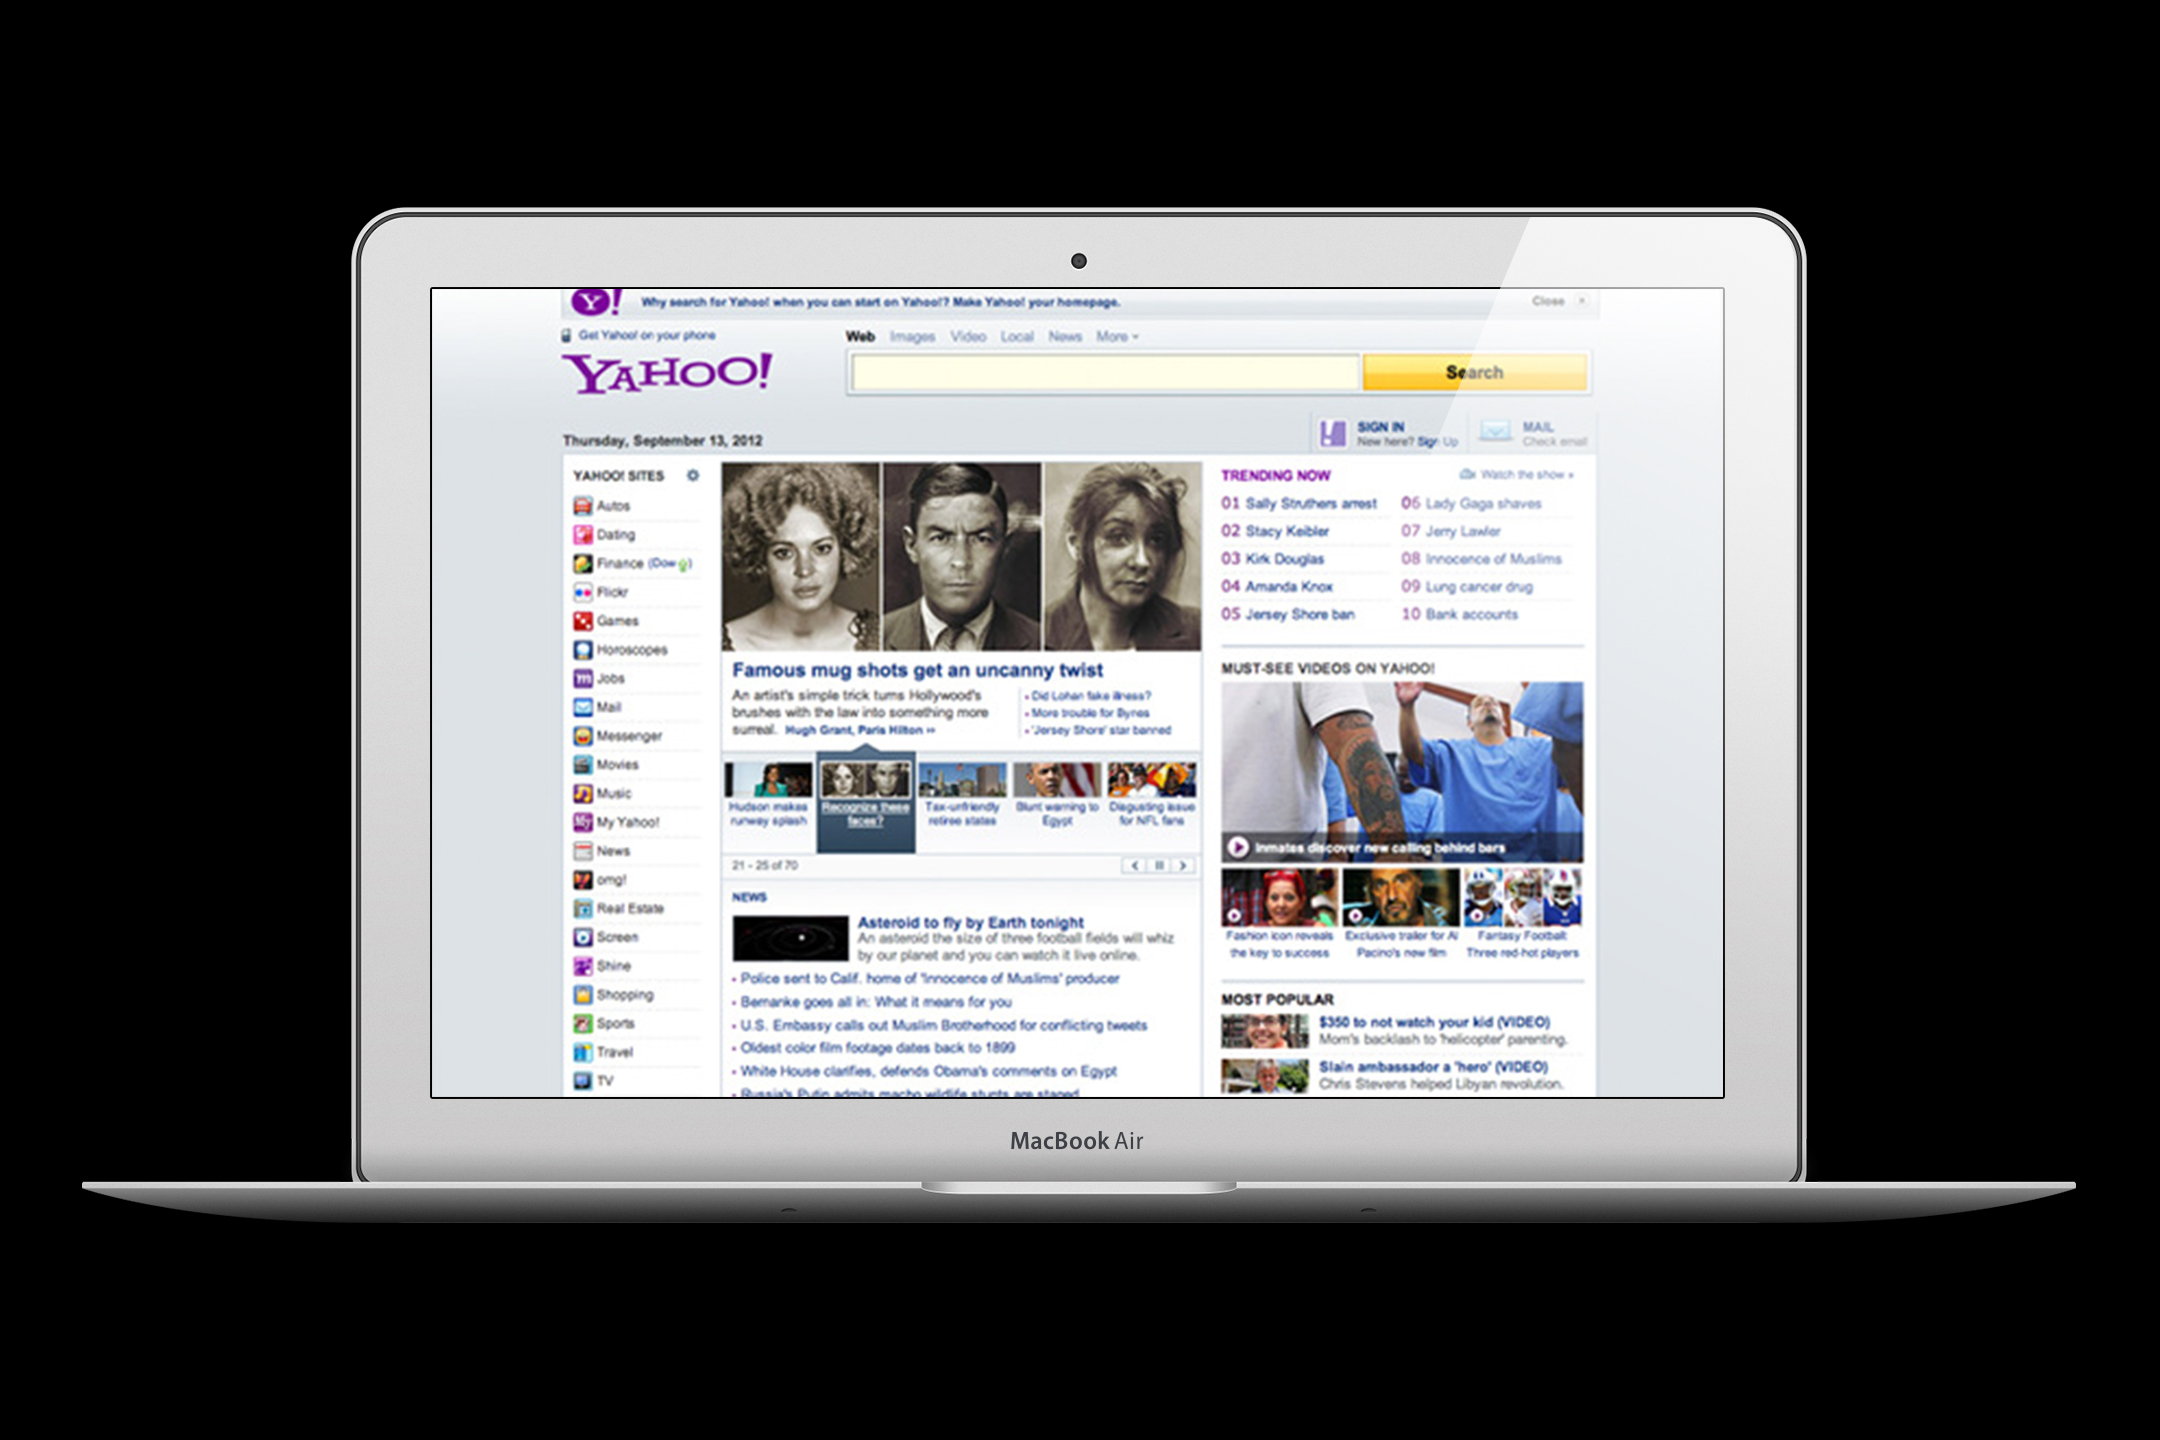 FRONT PAGE OF YAHOO!